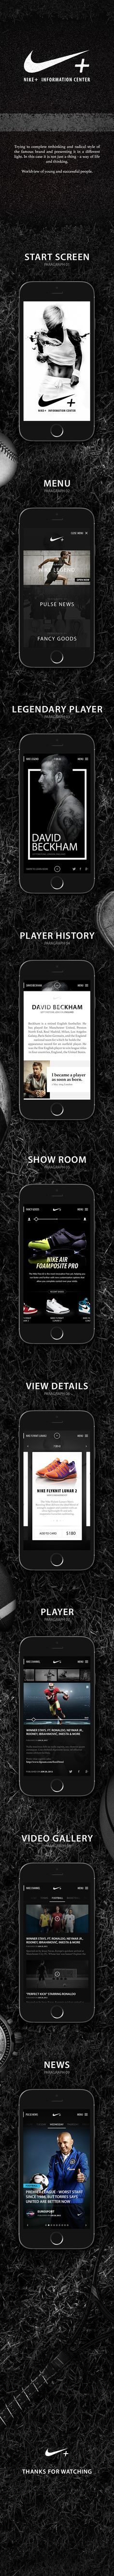 Nike. New Look & Concept on Behance